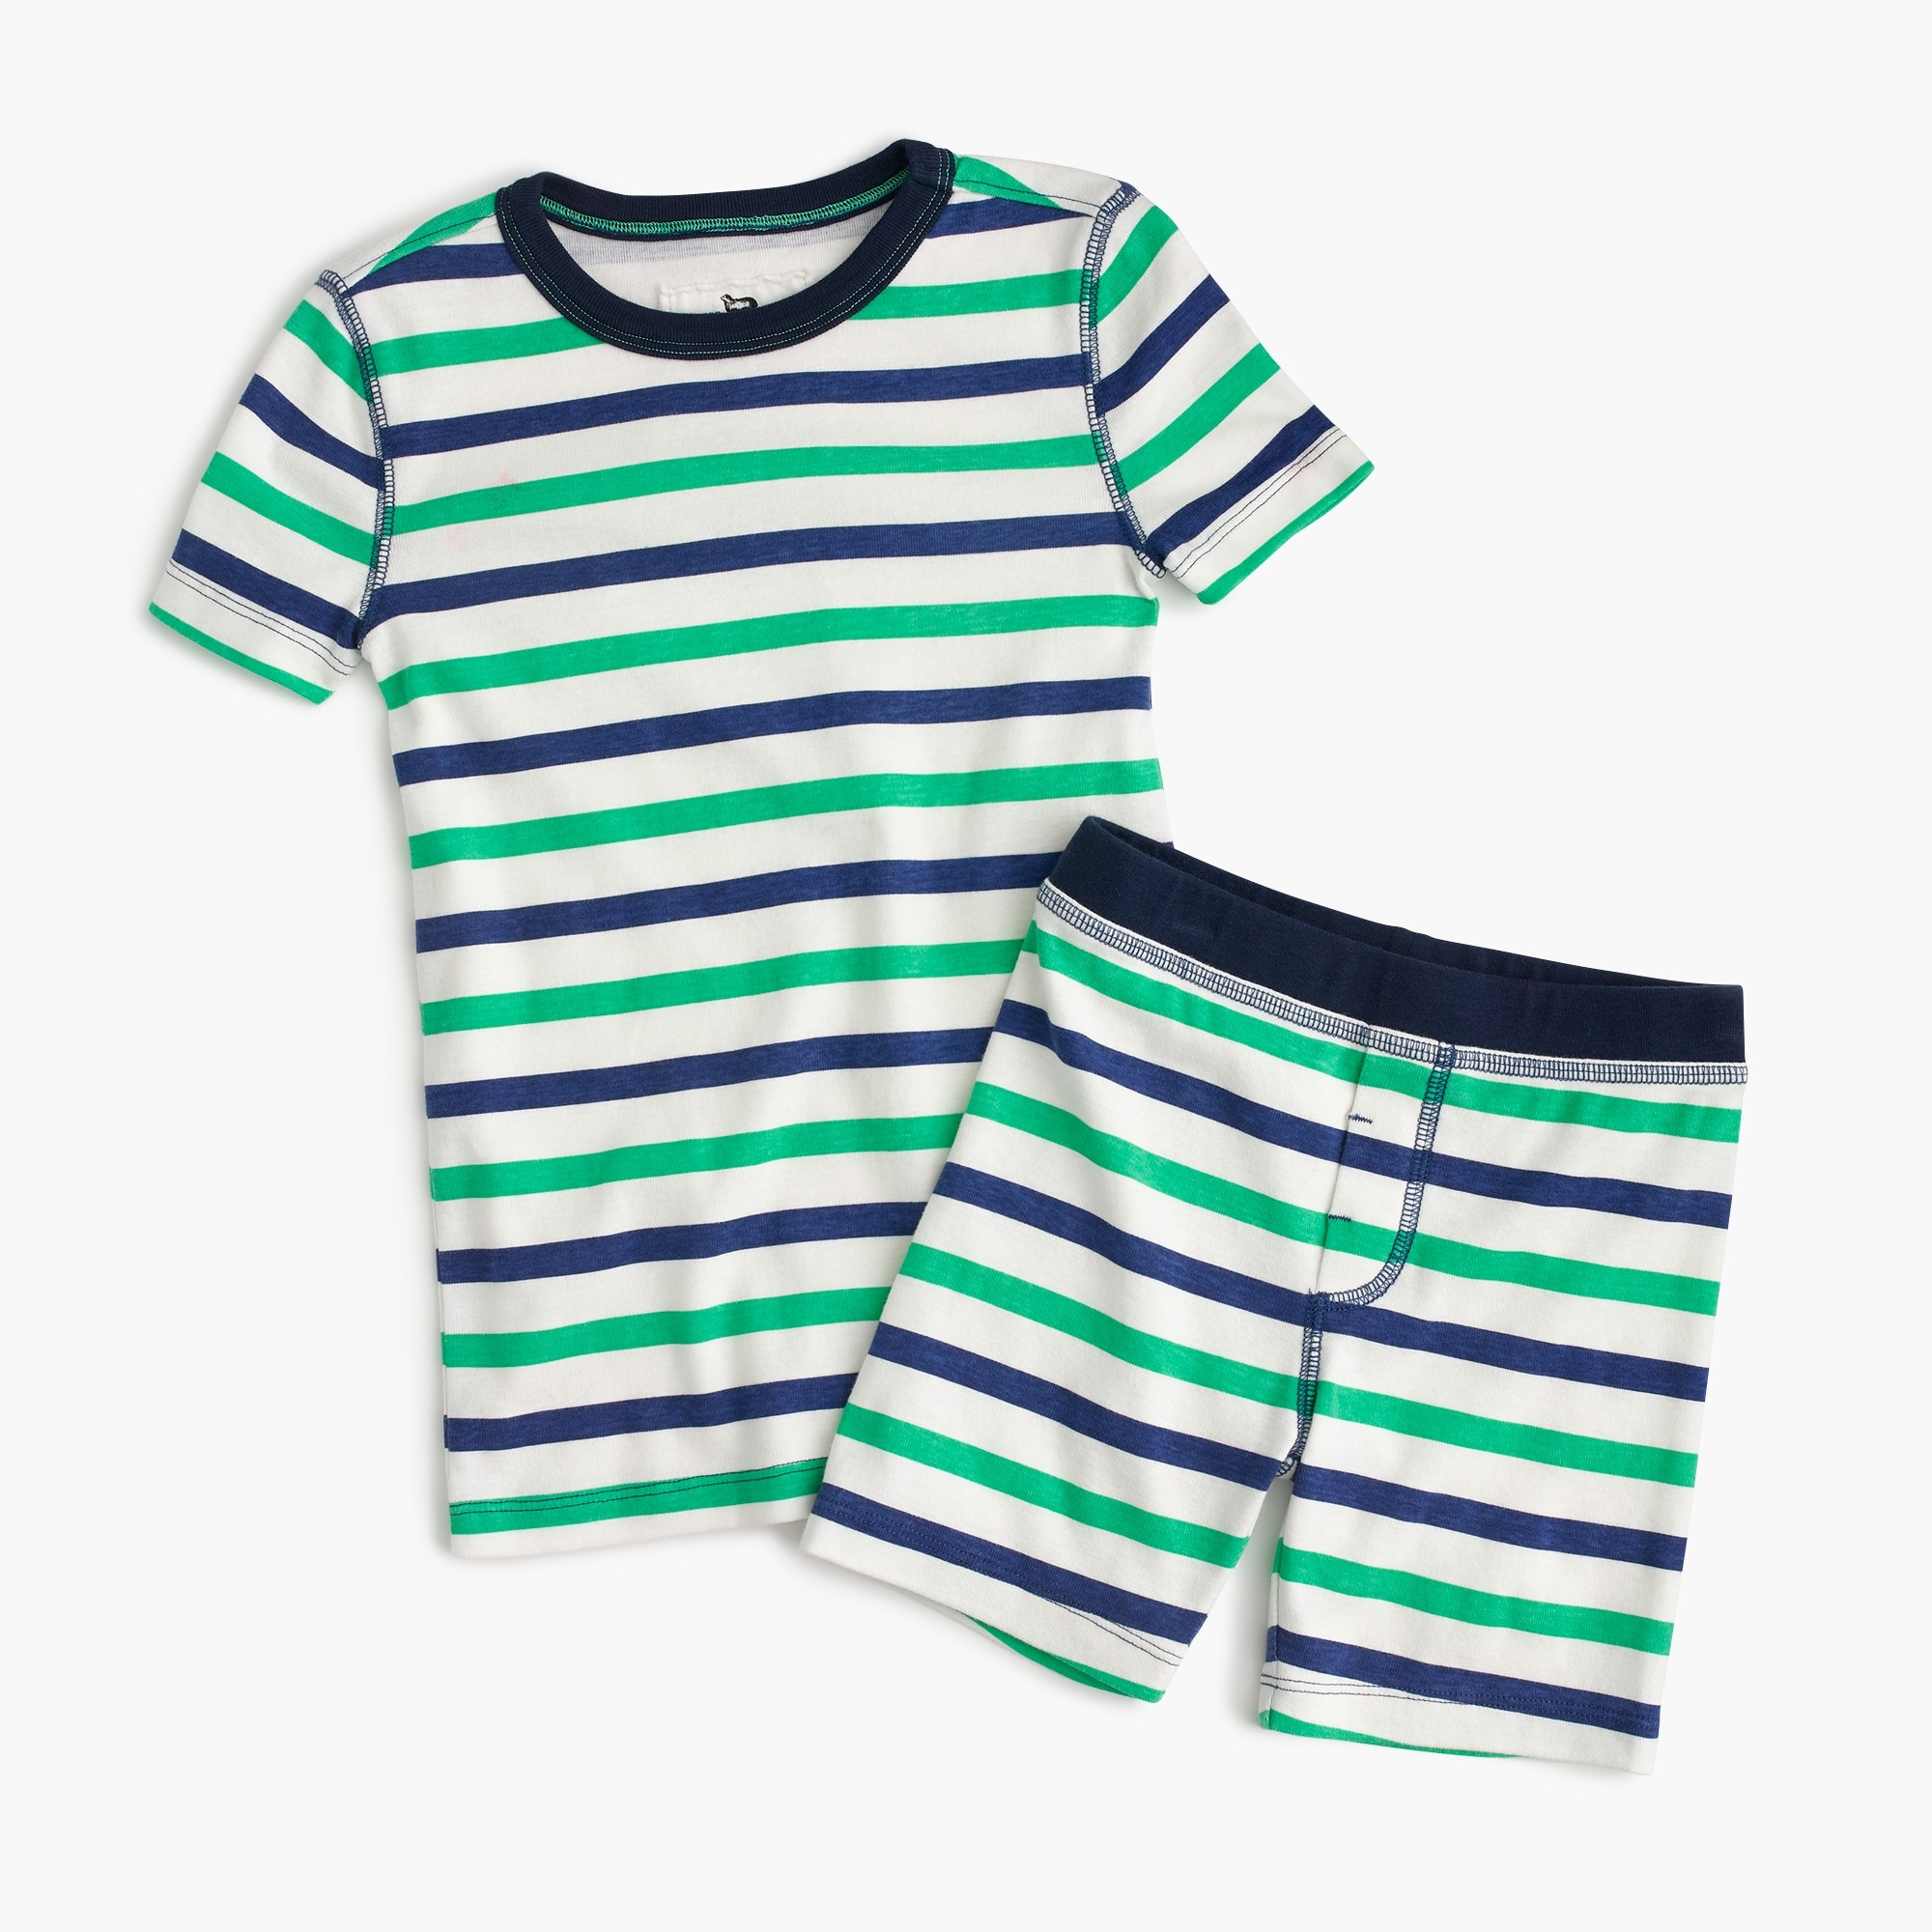 Kids' short pajama set in cabana stripes boy pajamas c